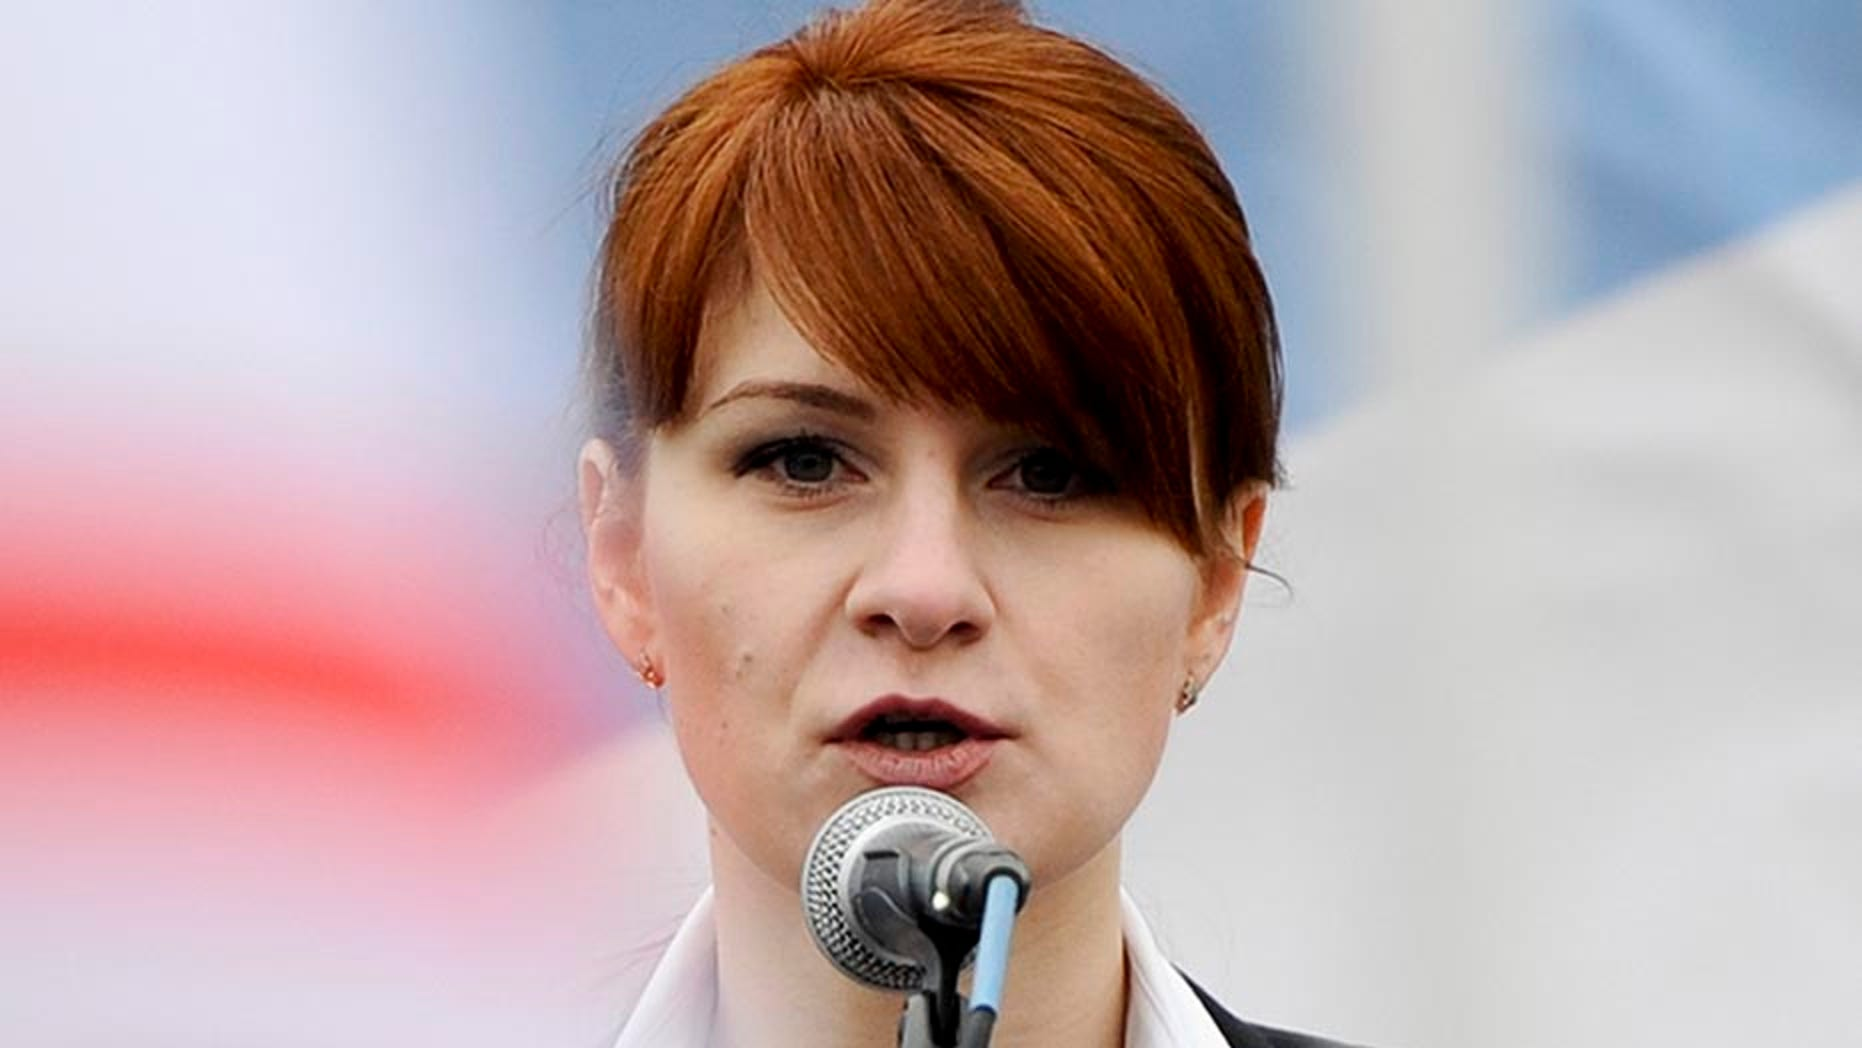 Maria Butina in 2013 speaks to a crowd during a rally in support of legalizing the possession of handguns in Moscow Russia